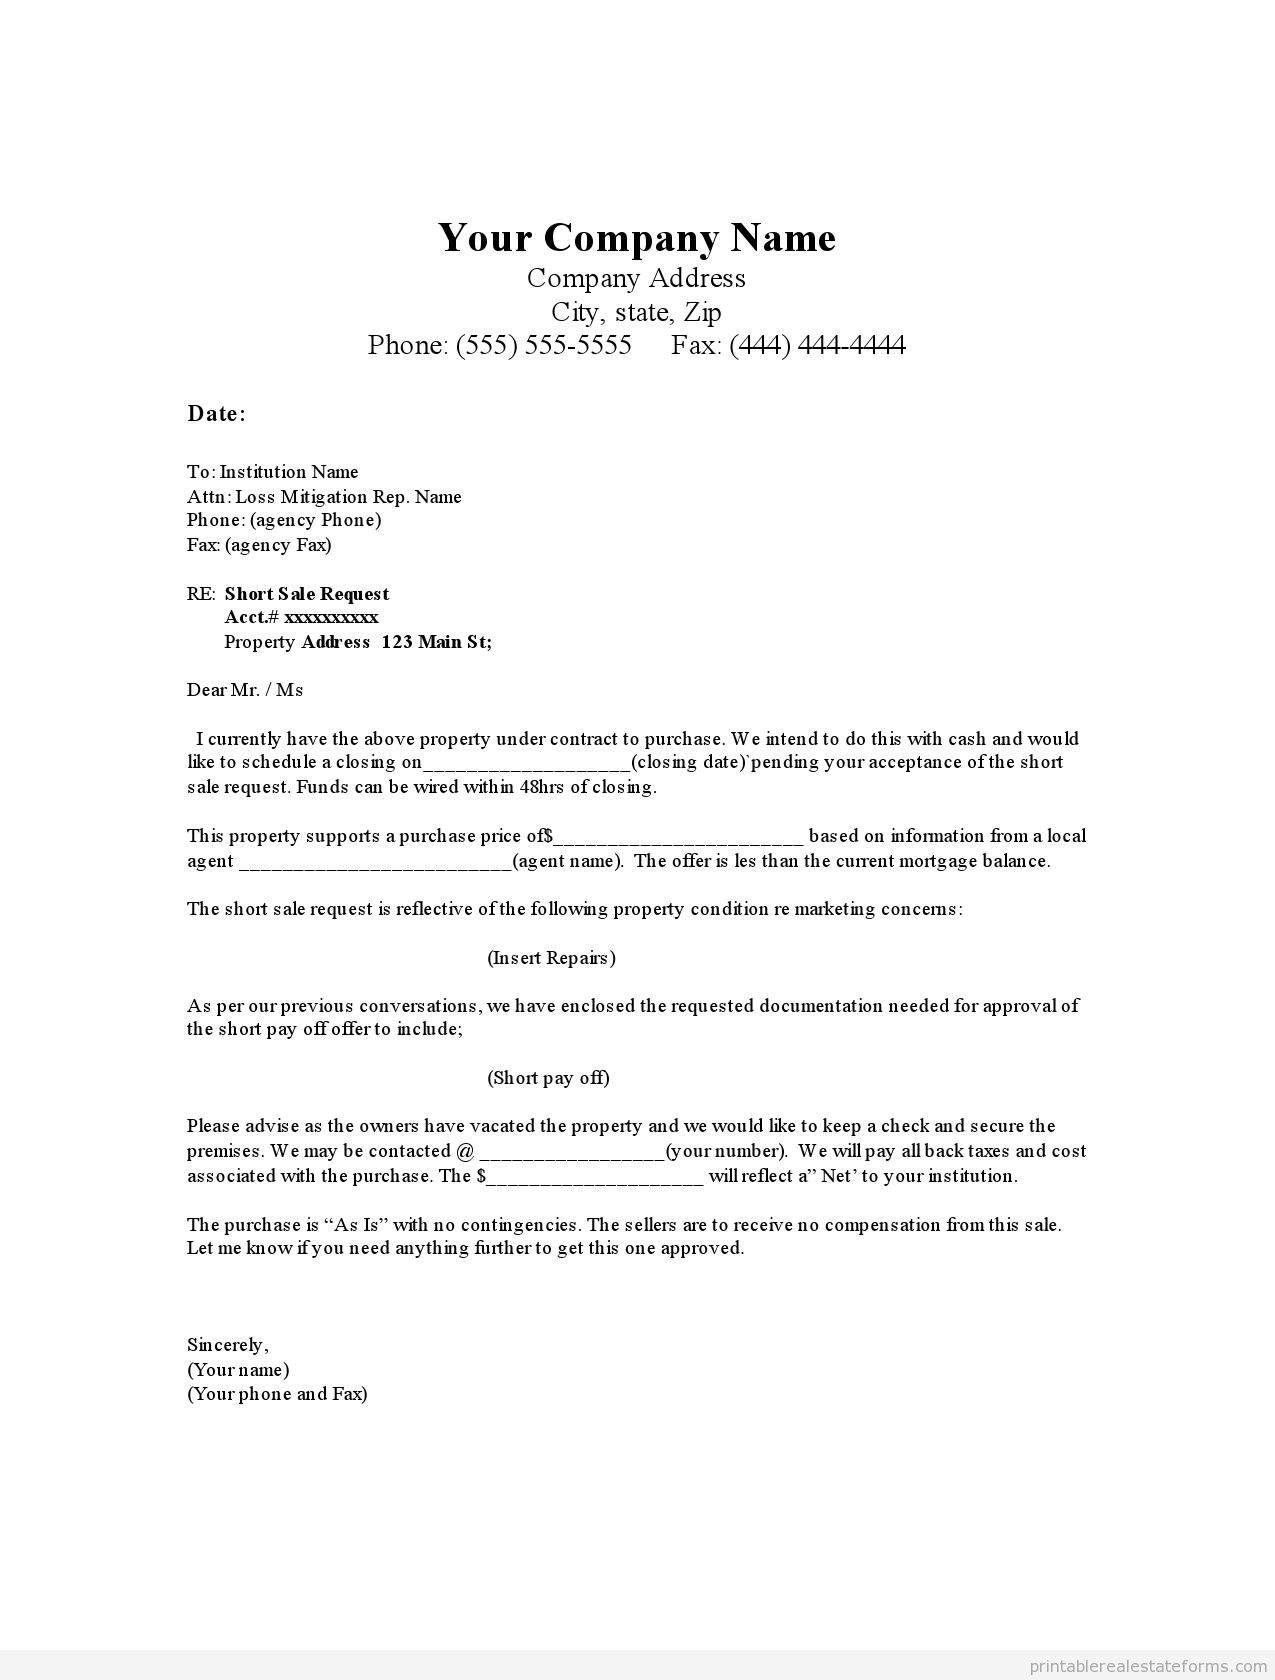 For Sale by Owner Letter Template - 24 Elegant Agreement Letter Sample for House